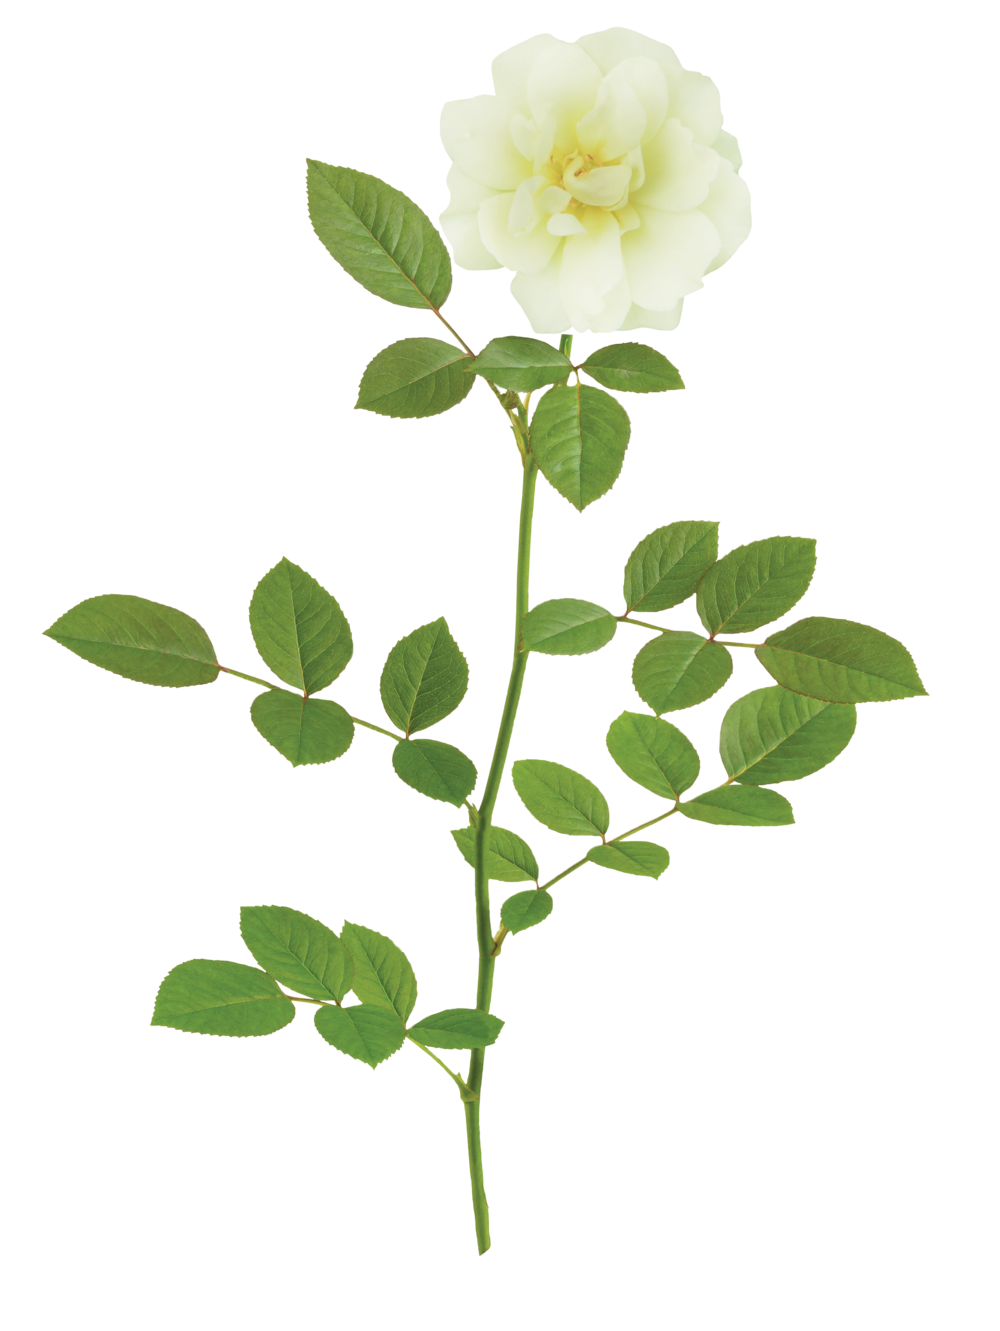 The Popcorn Drift® Rose - 'Novarospop' PP 24,773Popcorn Drift® has soft buttery yellow blooms that fade to a creamy white. This continuous bloomer flowers all season and pairs effortlessly with other plants.Zones: 4–11  |   Exposure: Full sun   |   Habit: 1½'h x 2'w